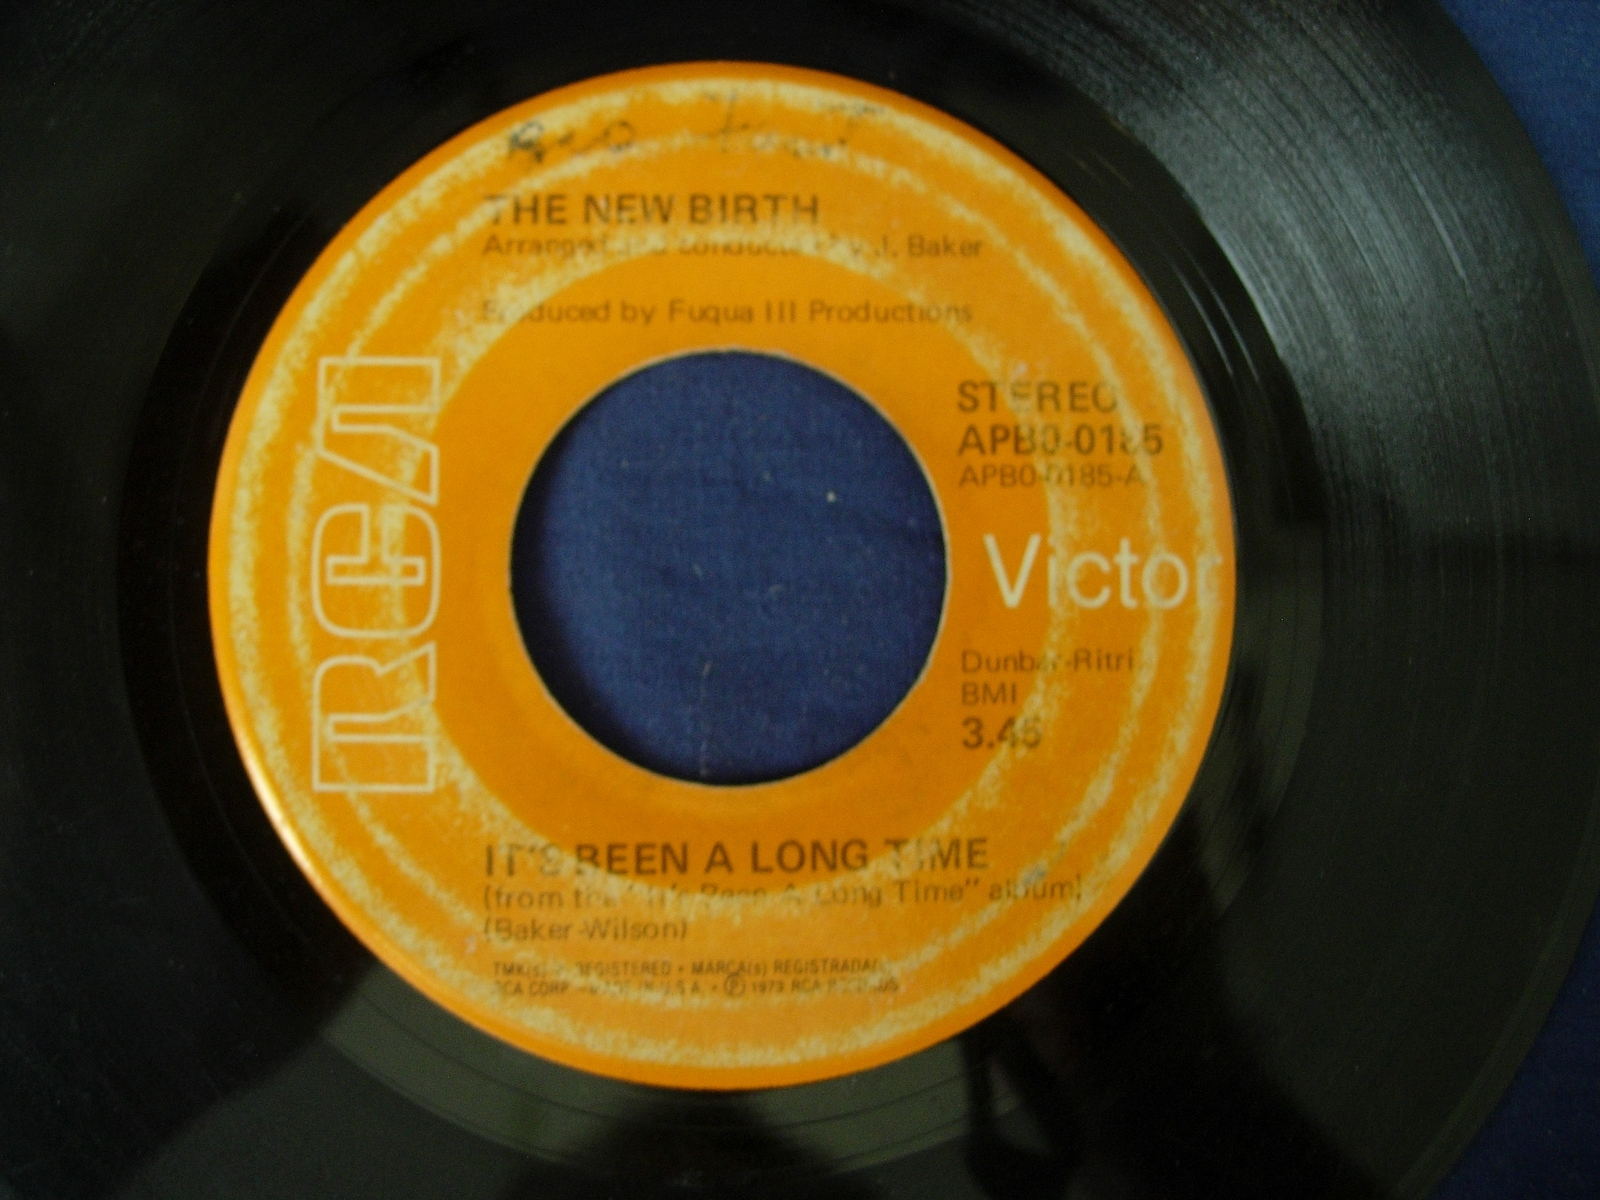 New Birth - Keep On Doin' It / It's Been A Long Time -  RCA 0185